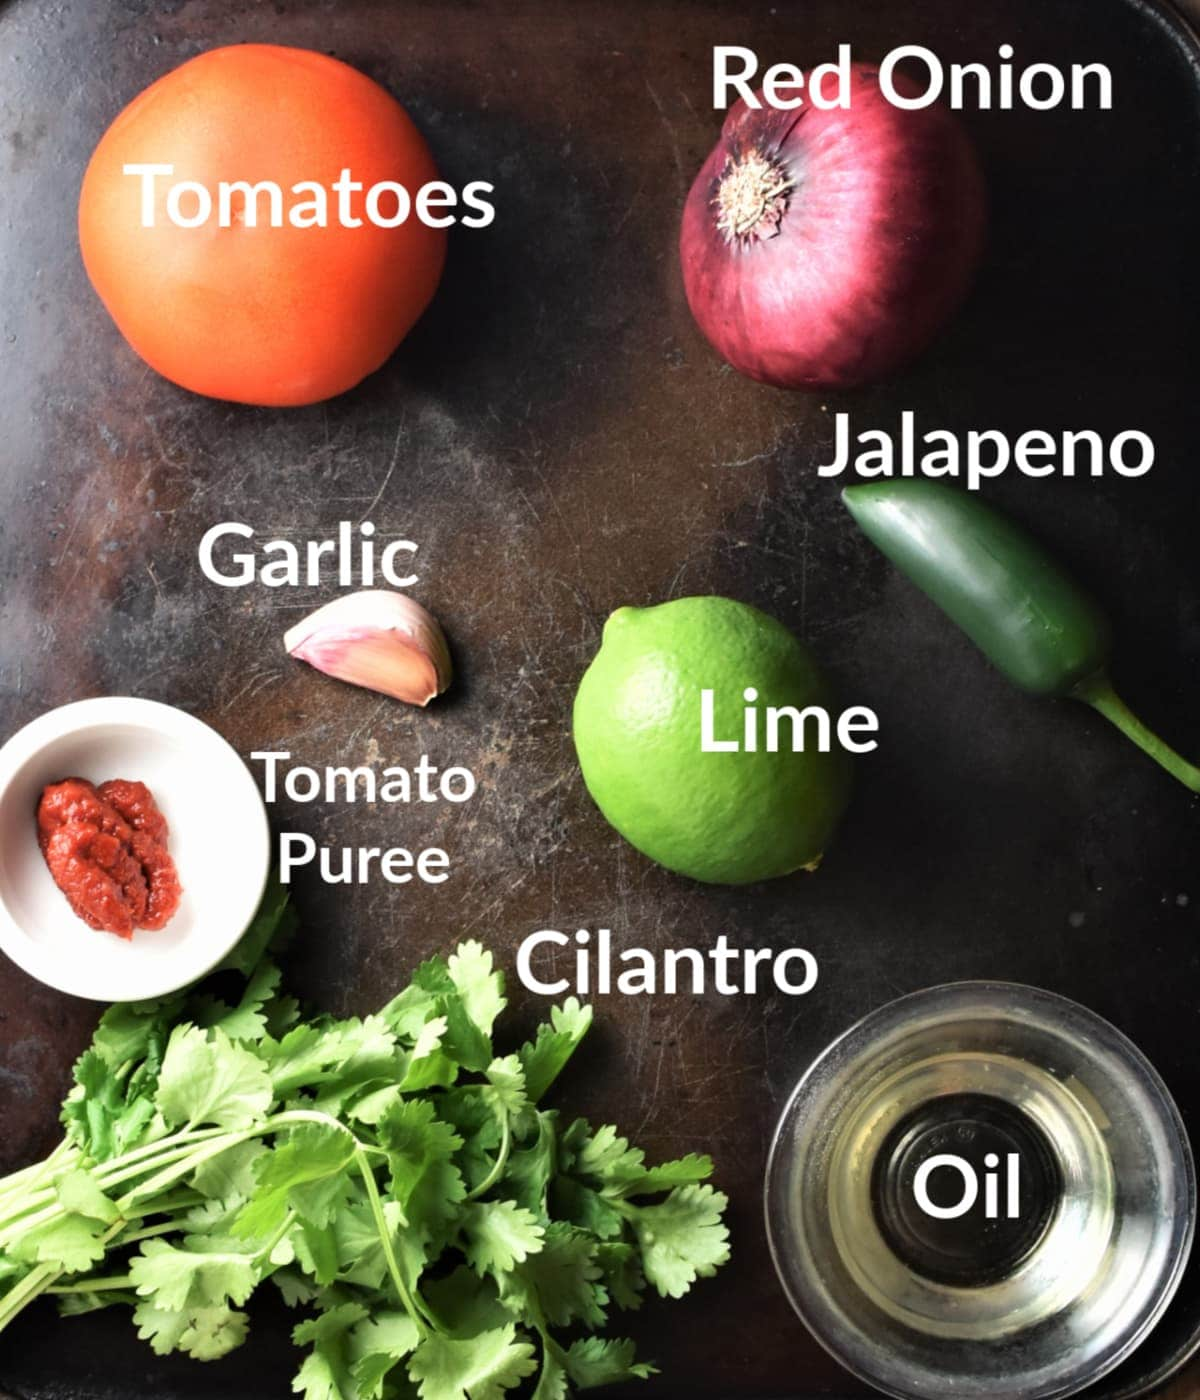 Tomato salsa ingredients against black background.